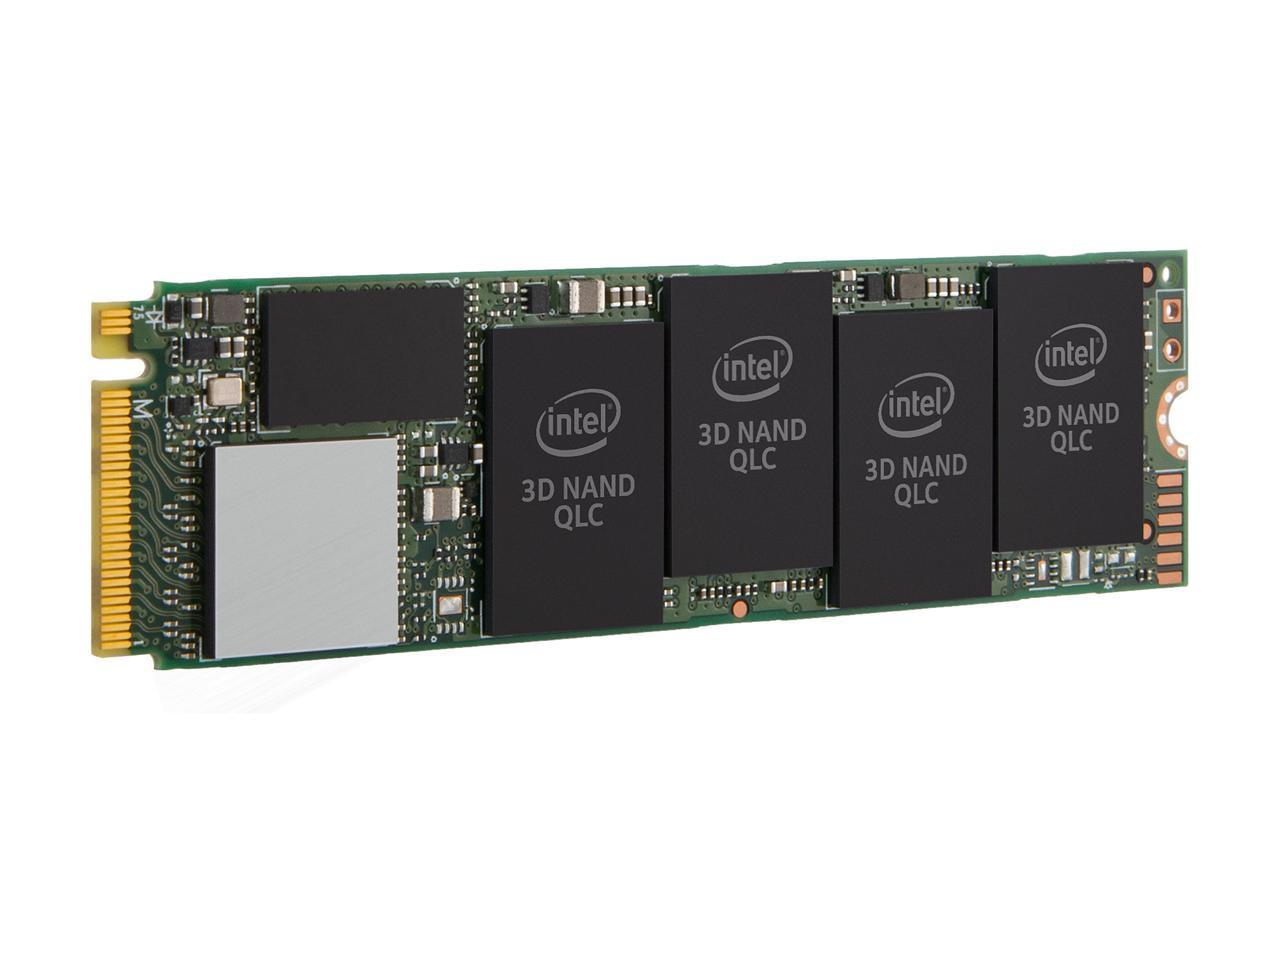 Solid State Drive (SSD) Intel 660P 512GB NVMe M.2 2280 PCIe 3.0 x4 QLC-3